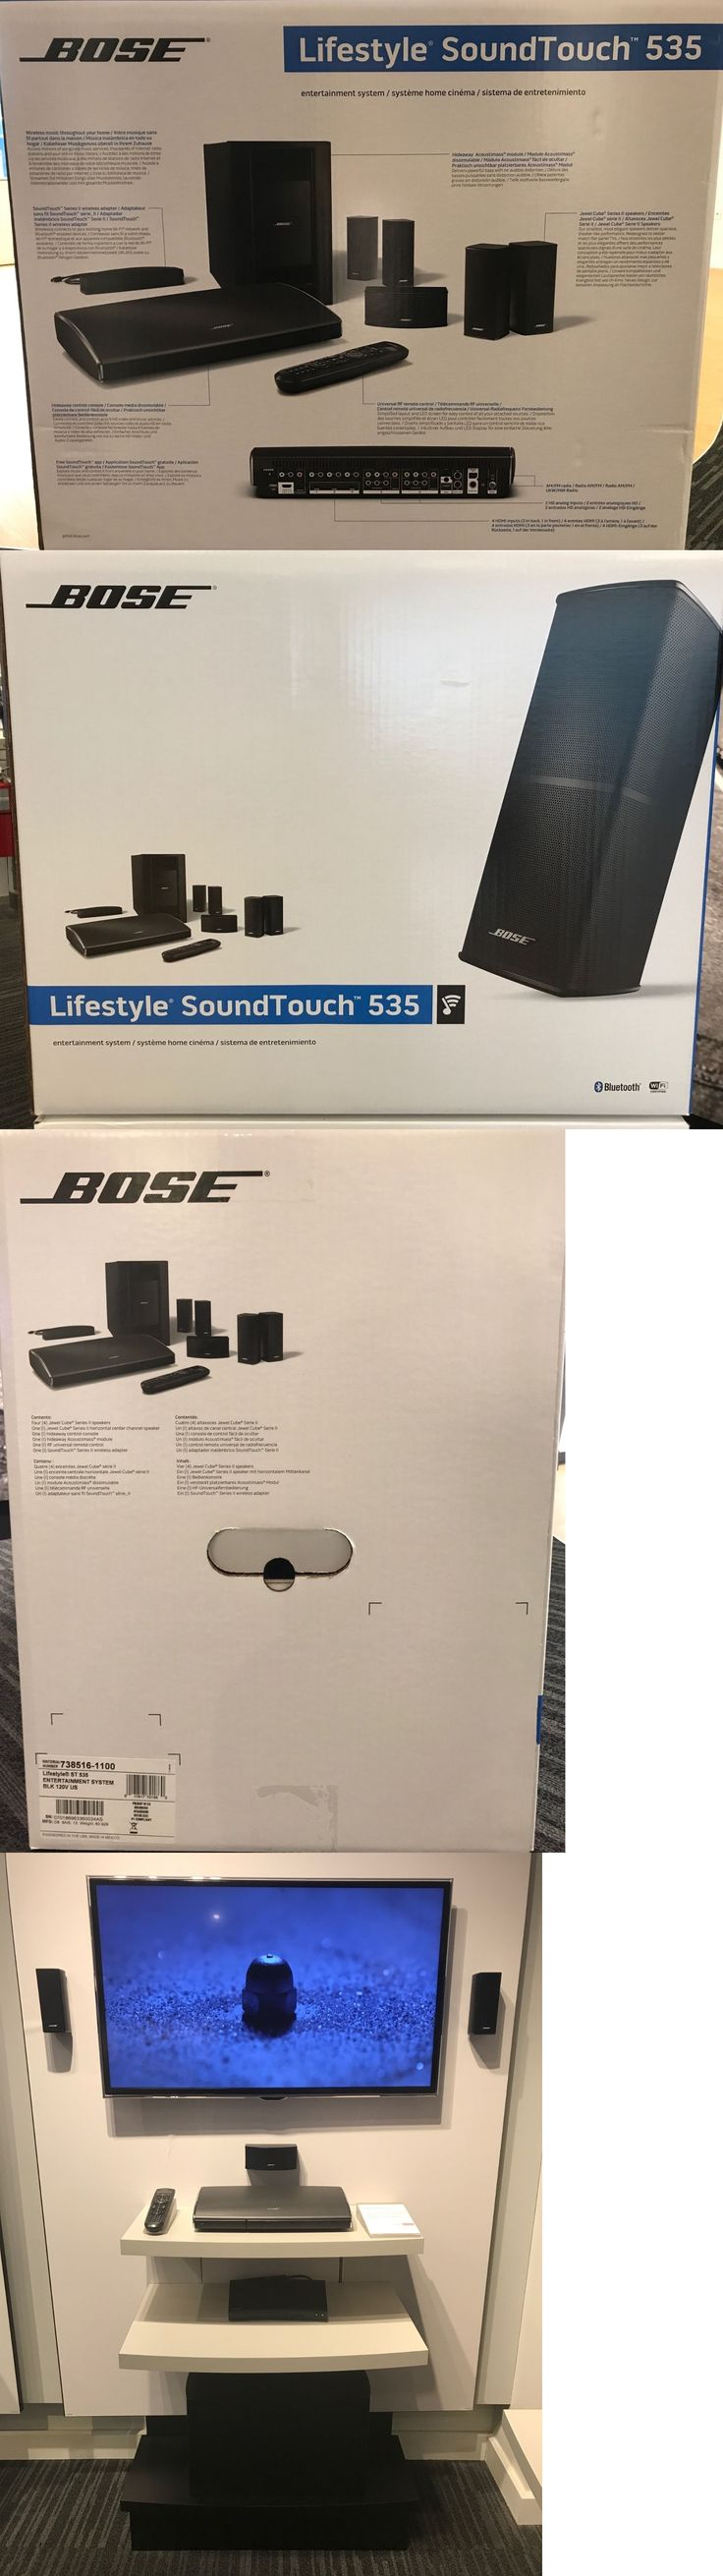 Home Theater Systems: Bose Lifestyle Soundtouch 535 Entertainment System -> BUY IT NOW ONLY: $1765 on eBay!